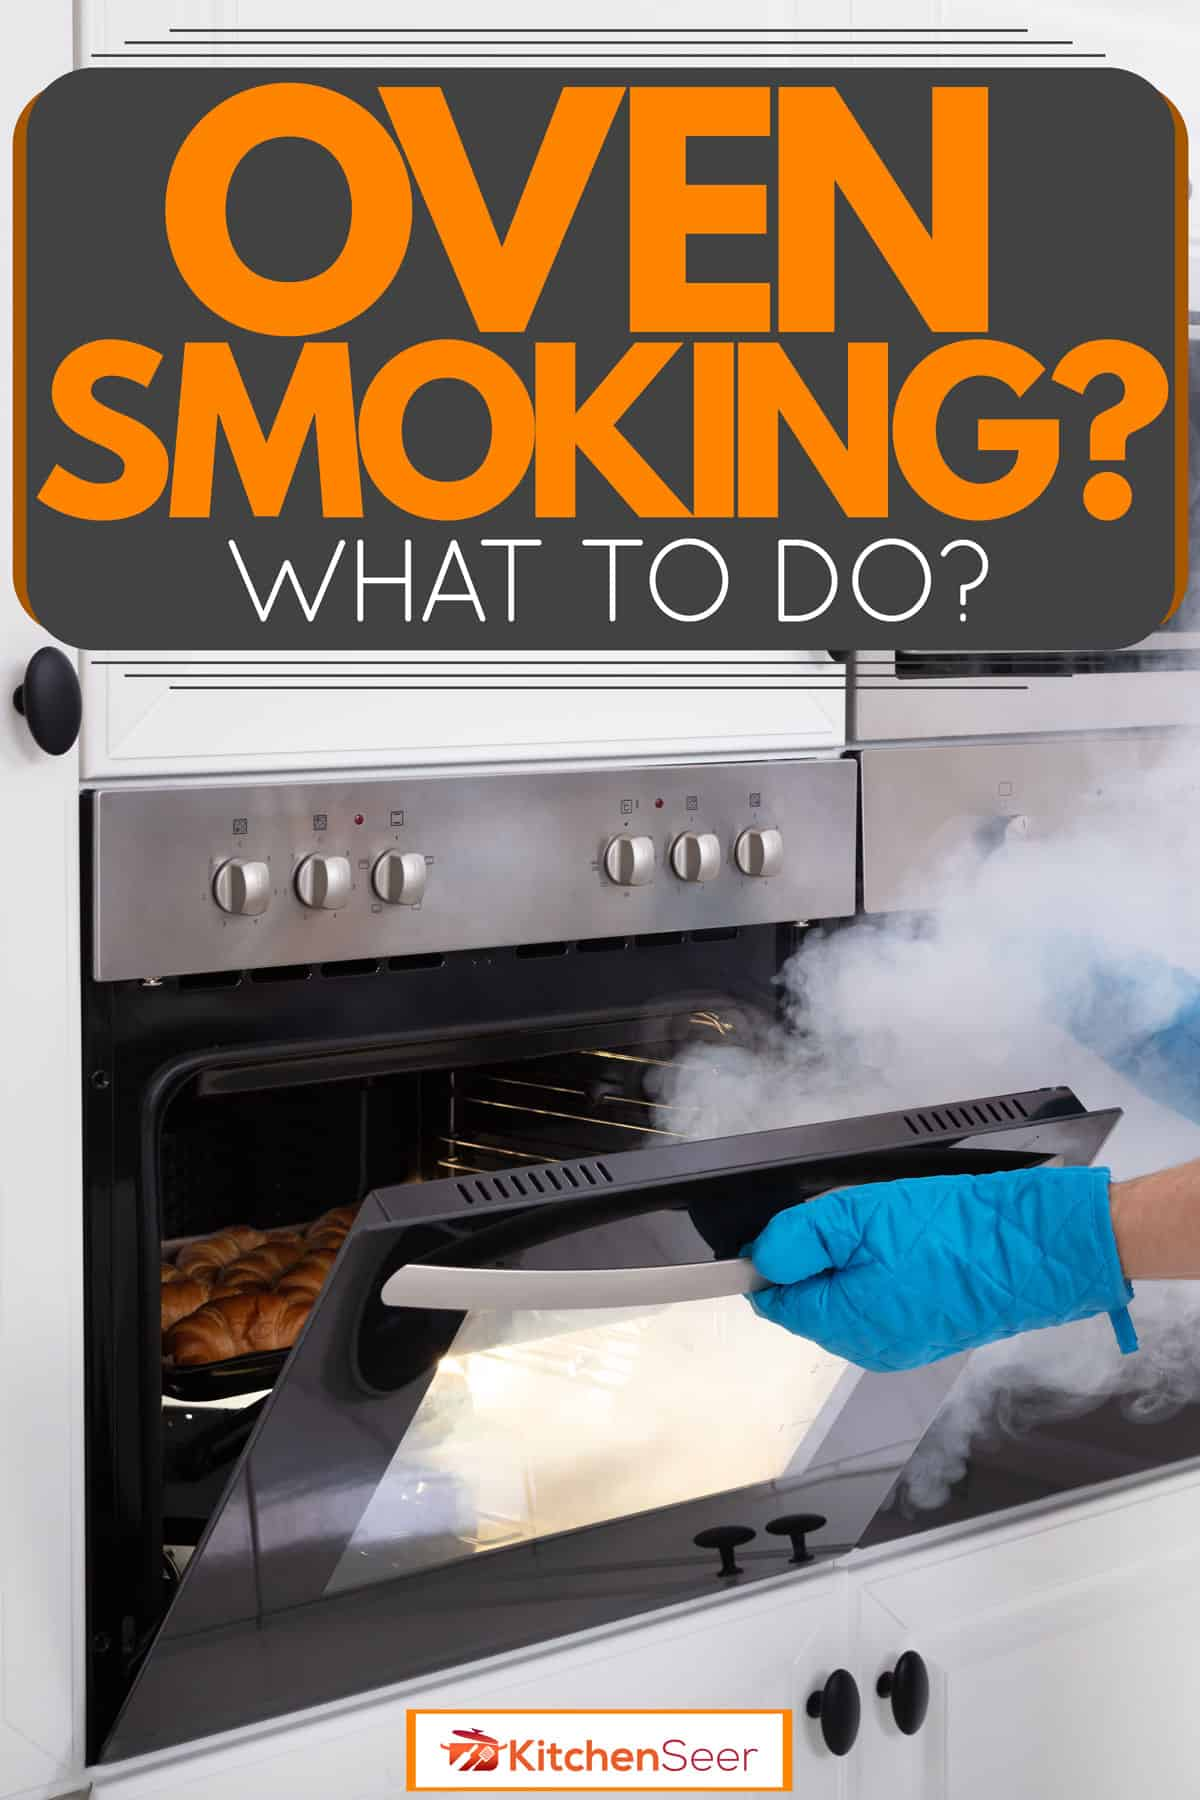 A woman wearing blue hand muffs while safely opening her smoking oven, Oven Smoking – What To Do?